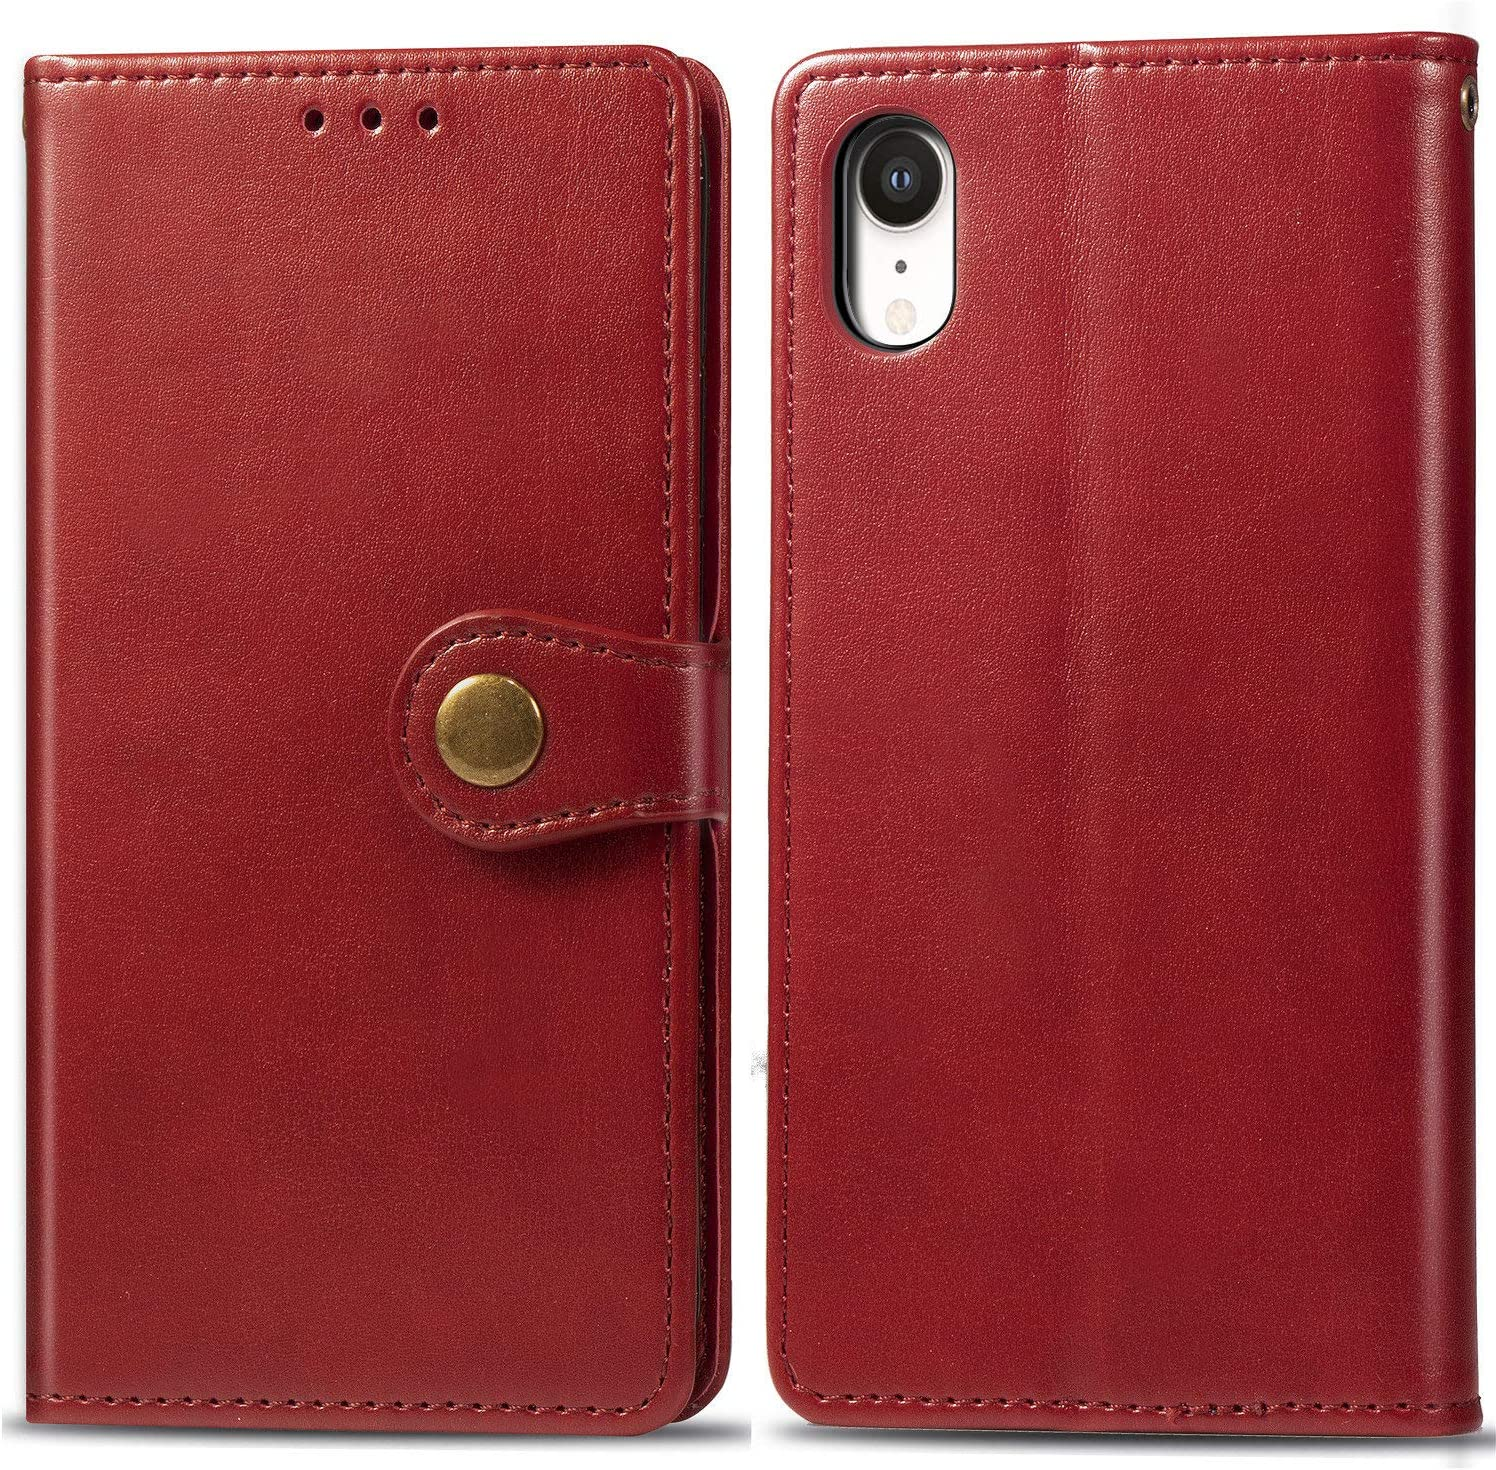 iPhone XR Wallet Case,Luxury Leather Phone Cases with Credit Card Holder Slot Stand Kickstand Rugged Flip Folio Protective Cover for Apple iPhoneXR iPhone10R i Phonexr 10XR iPhoneXRcases Red